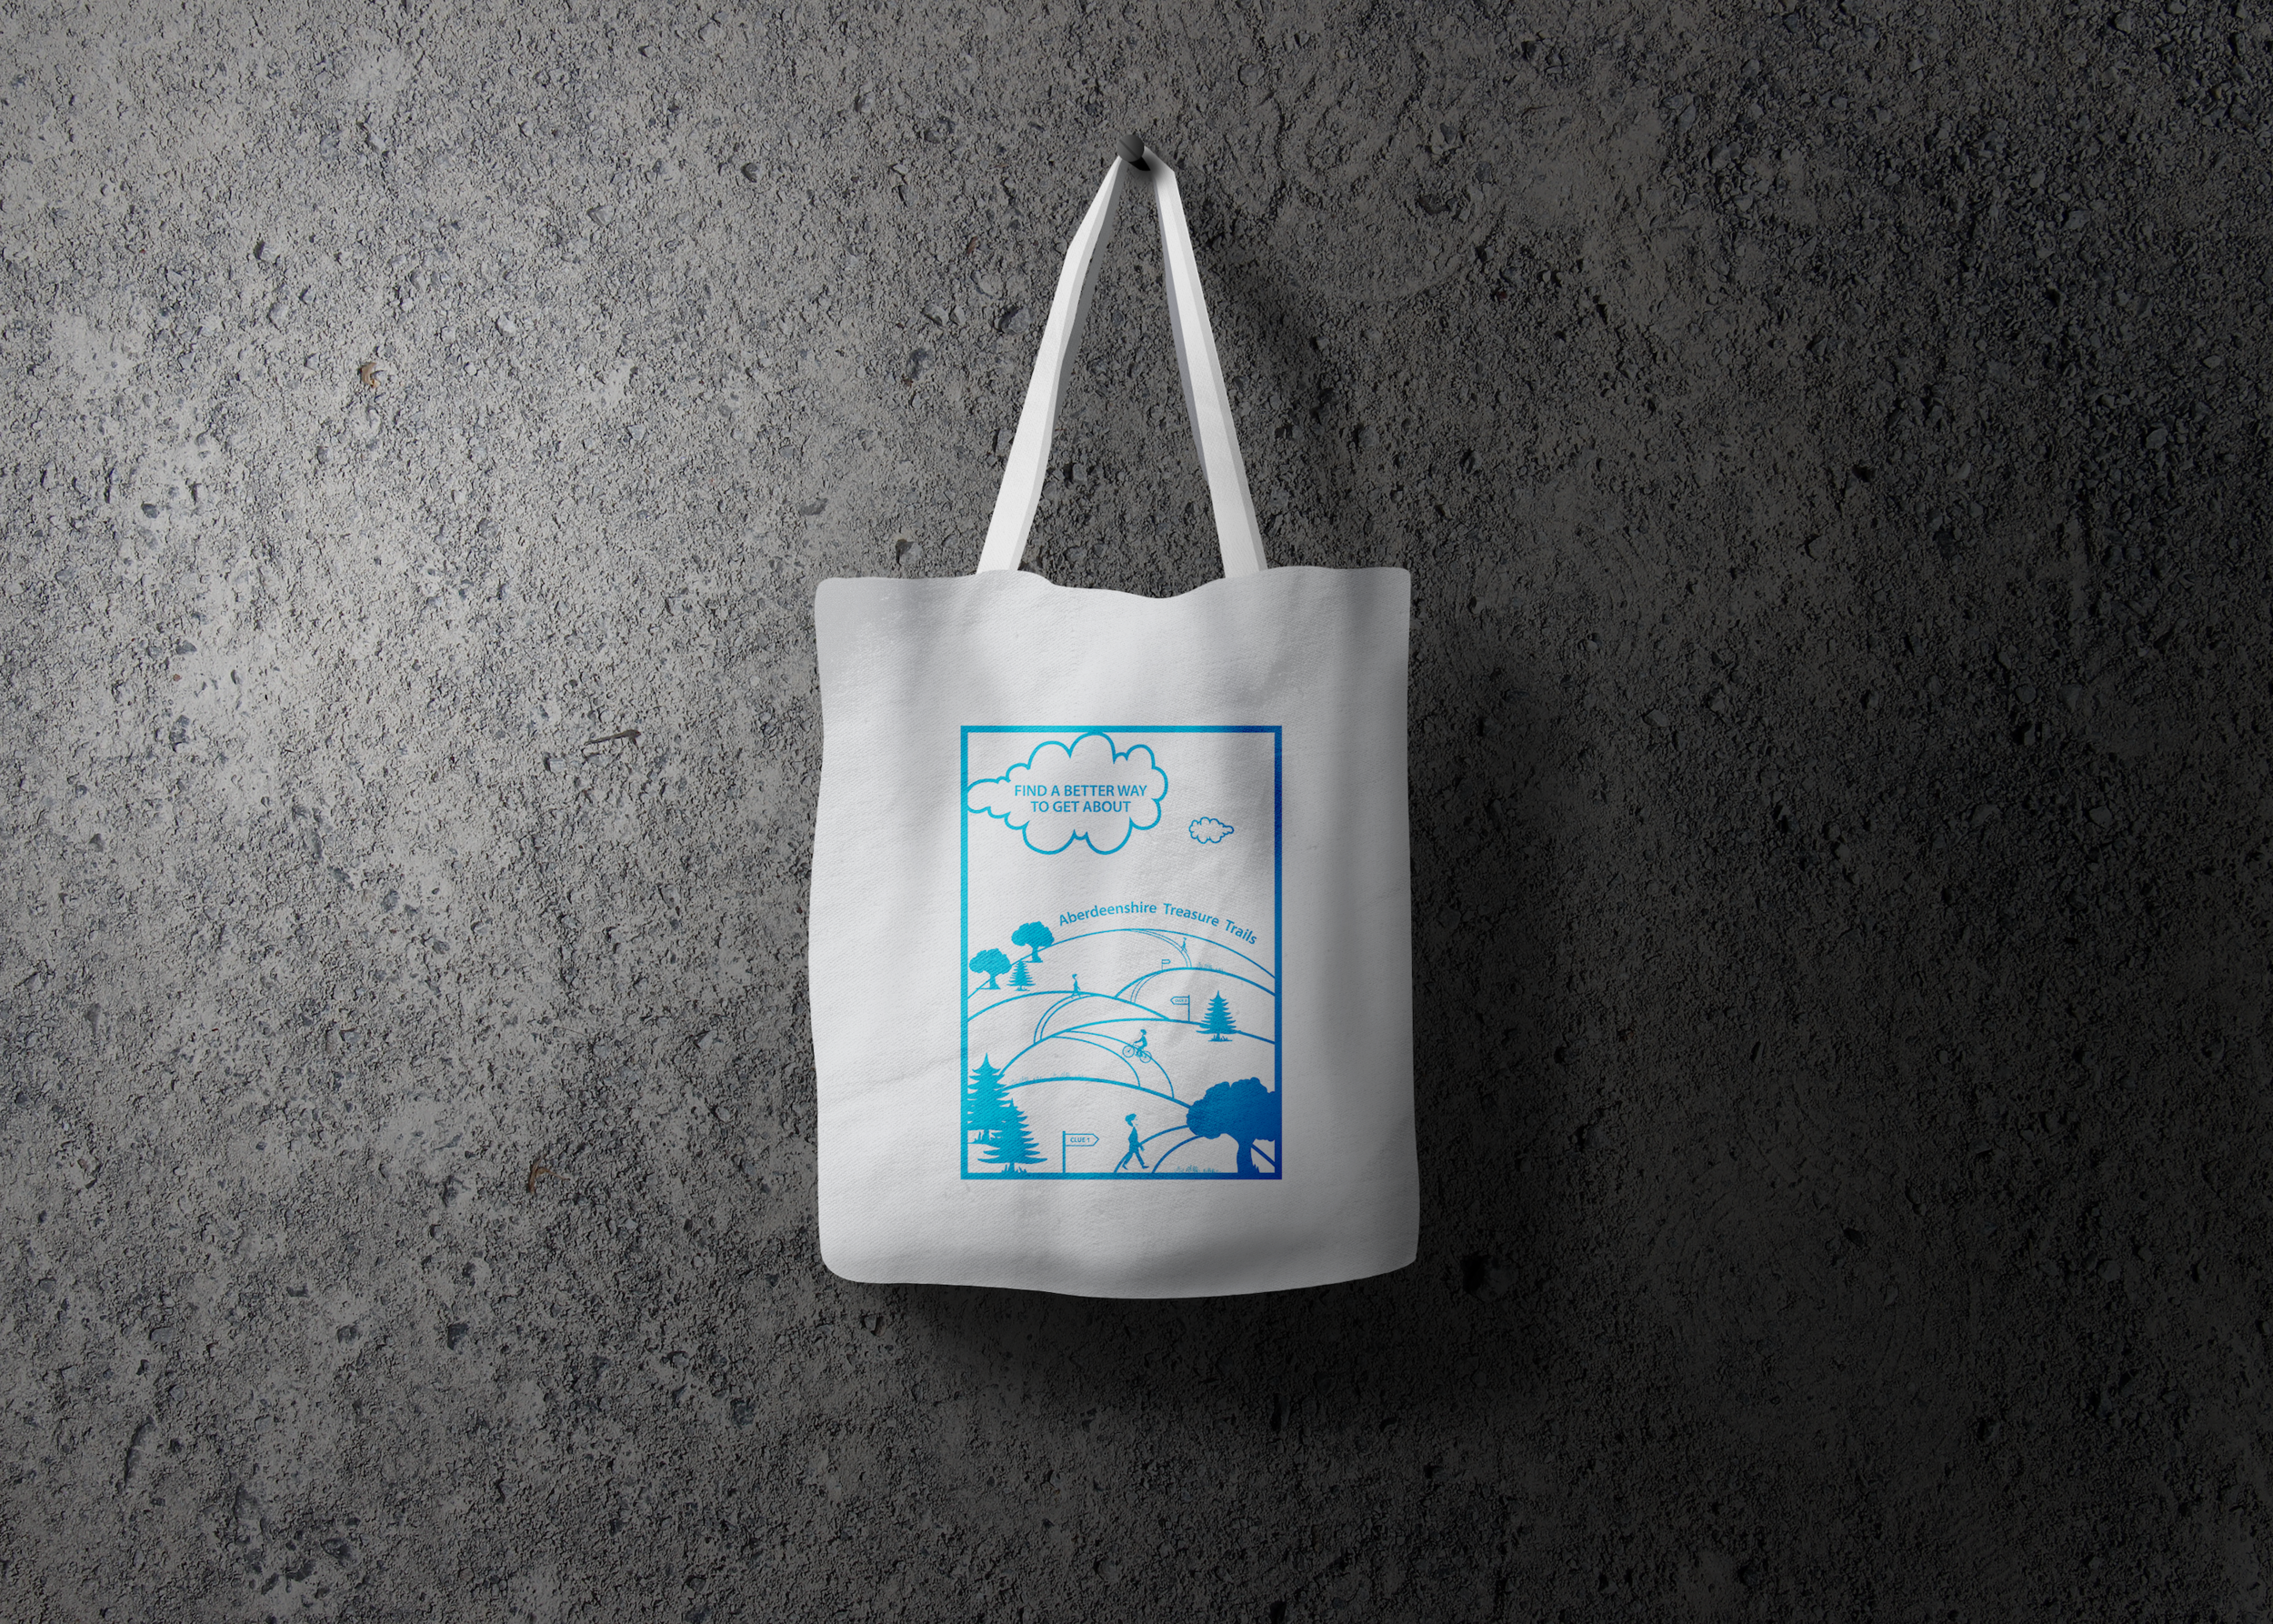 Aberdeenshire Council GetAbout tote bag